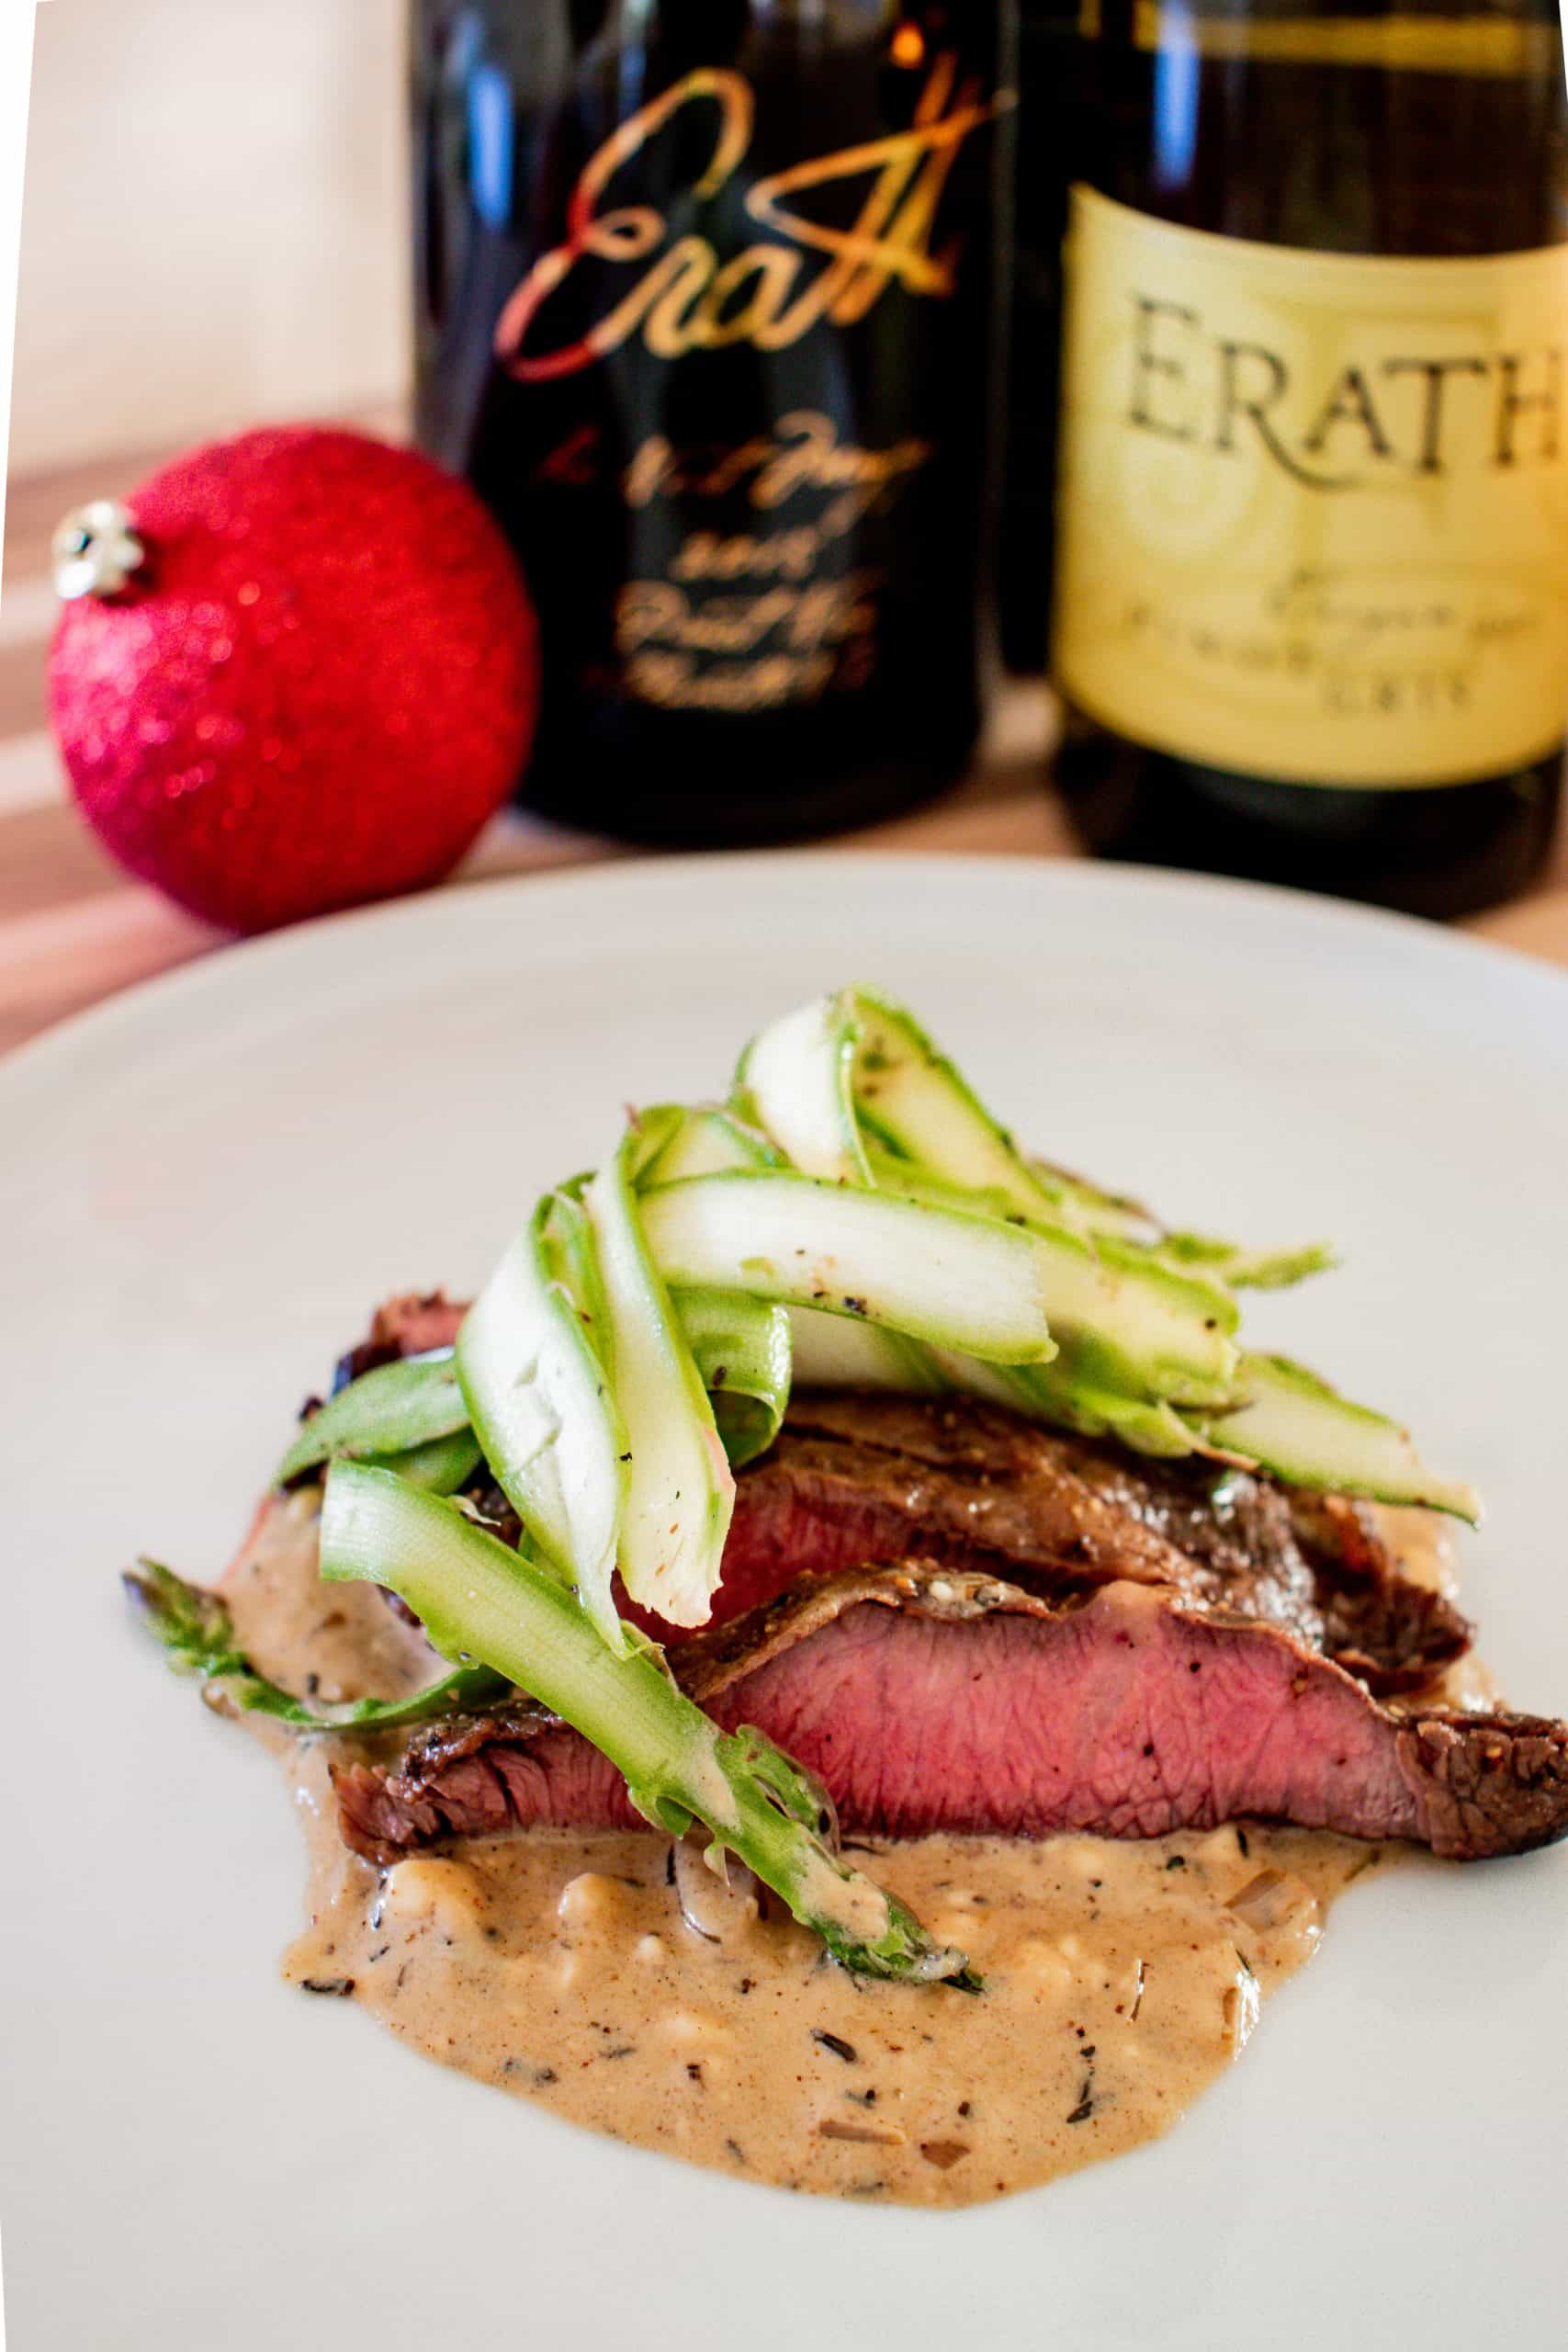 Pan-Seared Skirt Steak with Blue Cheese Cream Sauce